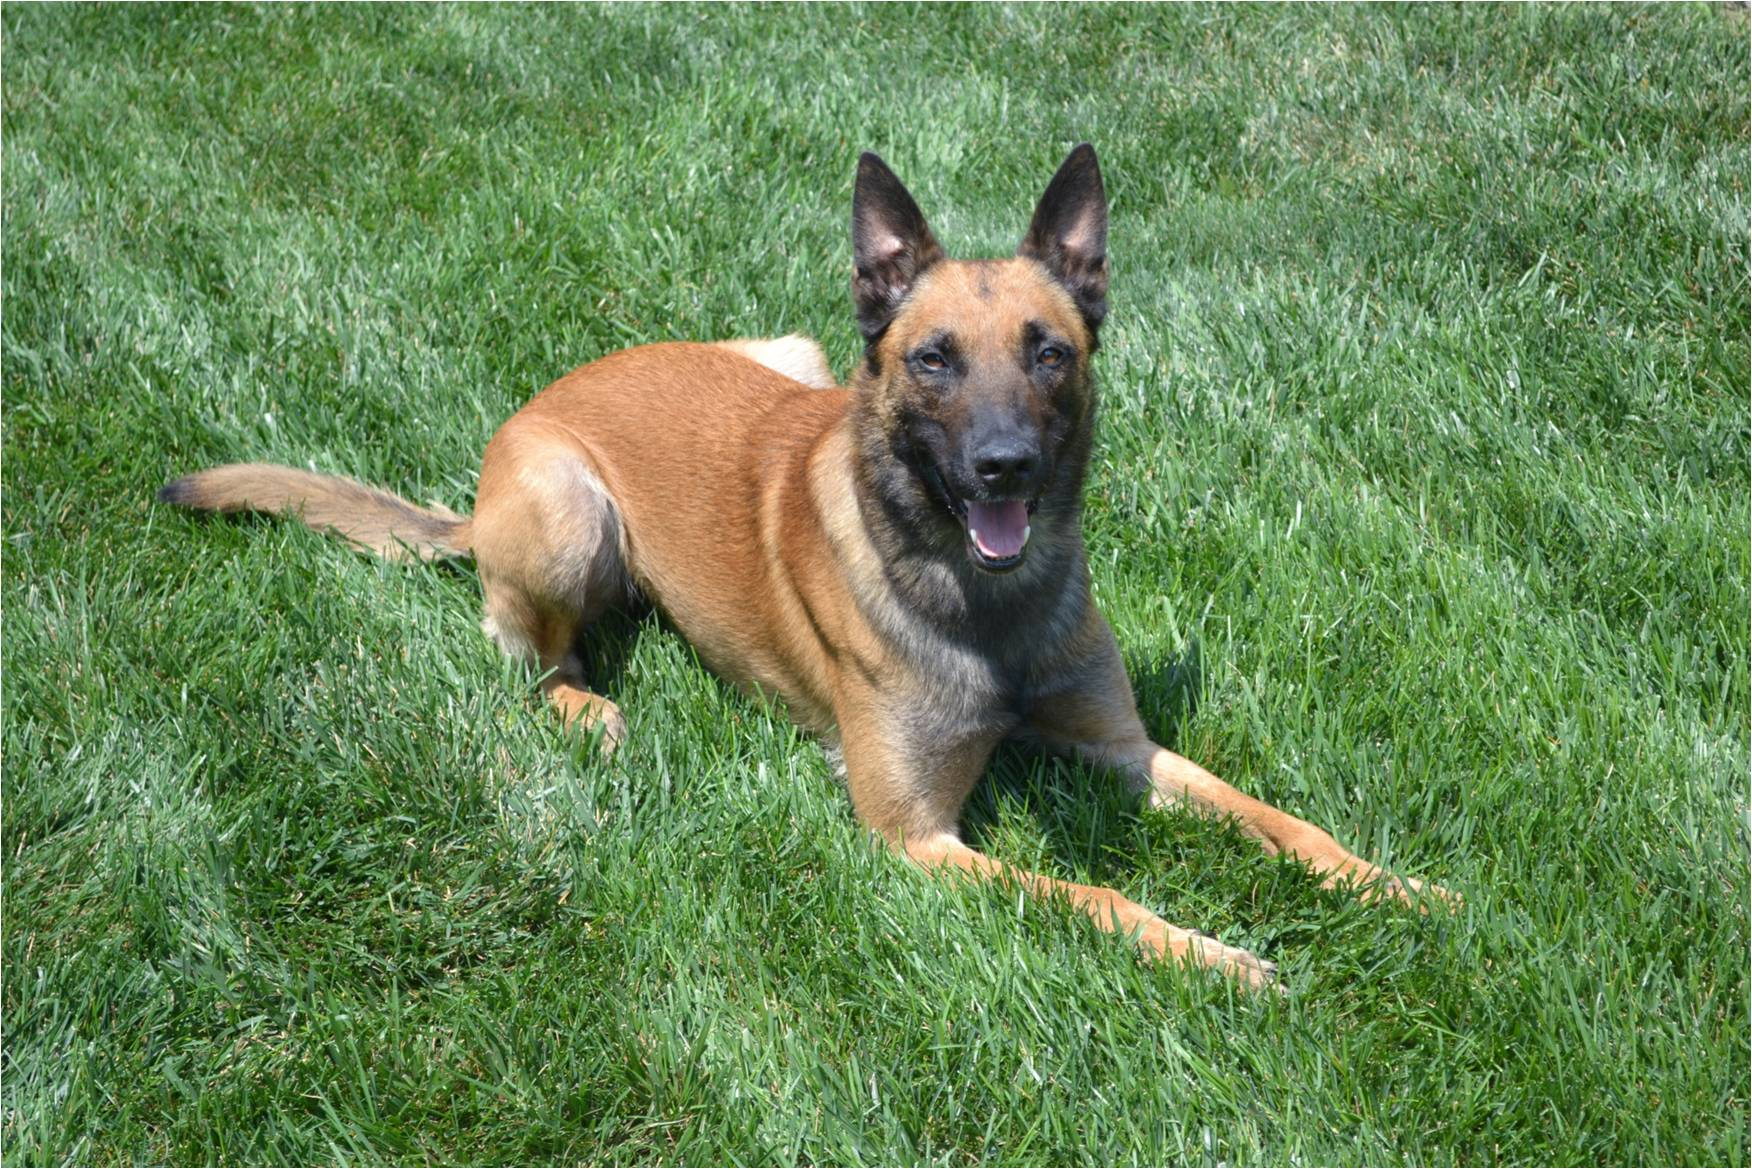 Image of K-9 Enzo.